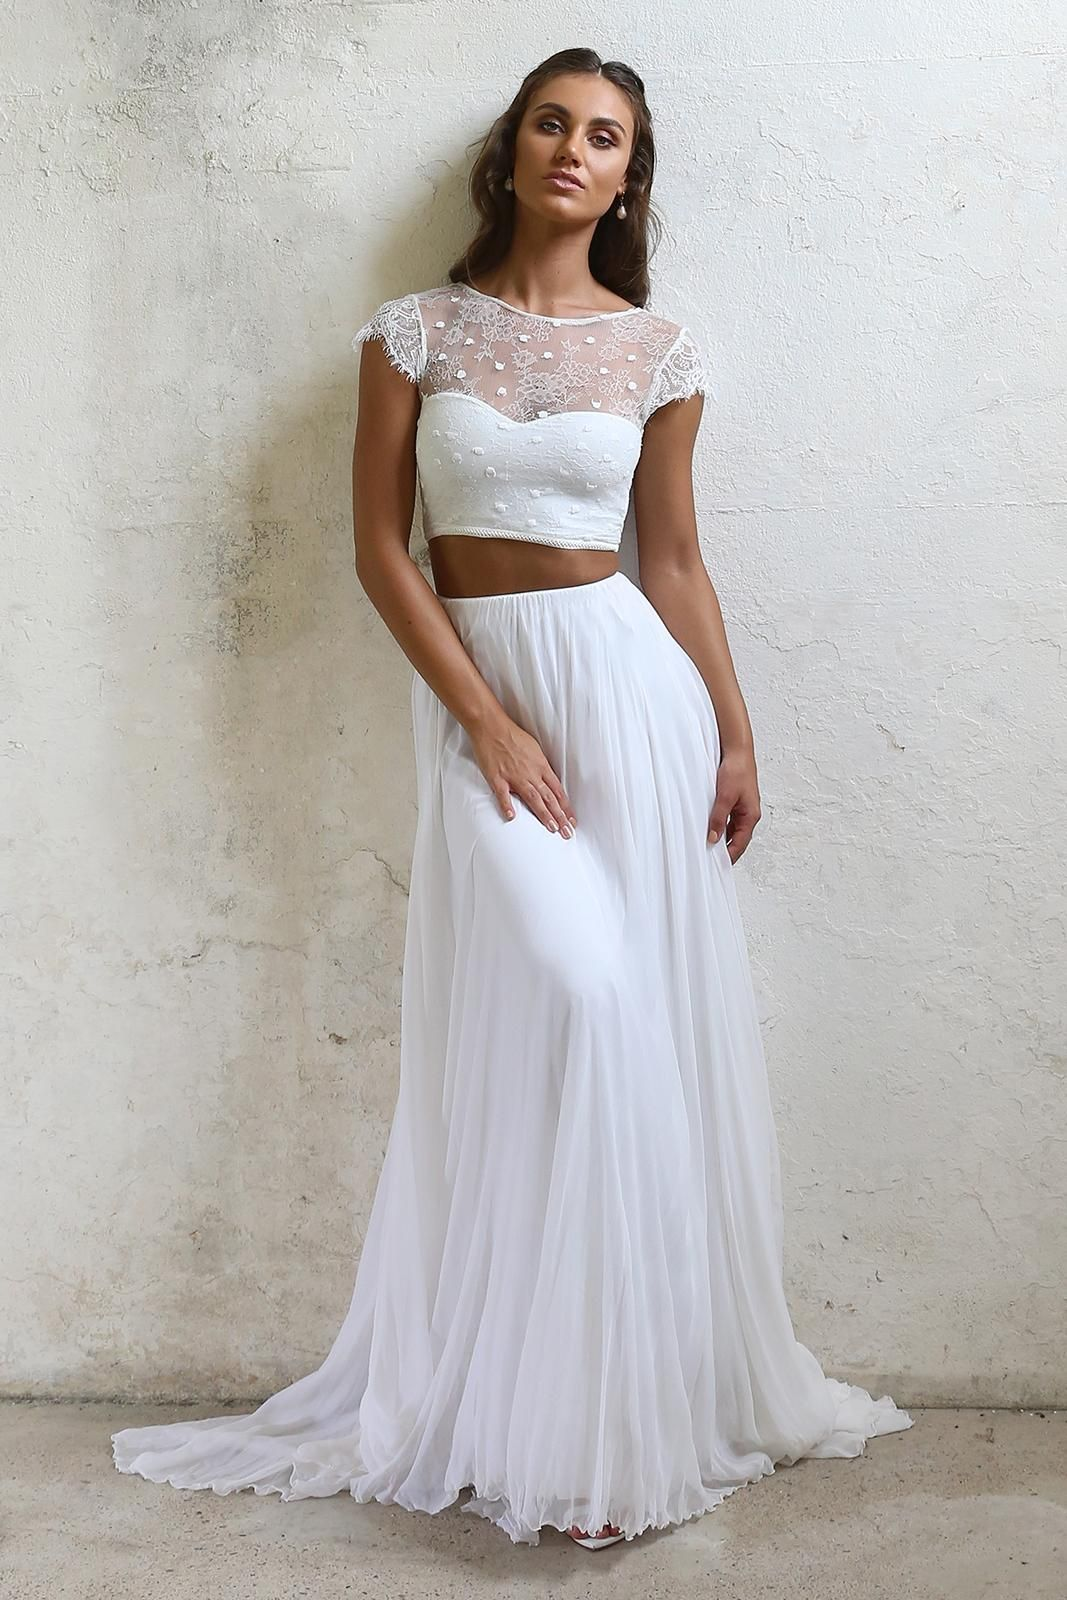 Sheer top wedding dress  Yeo  Grace Loves Lace  Wedding Things  Pinterest  Wedding